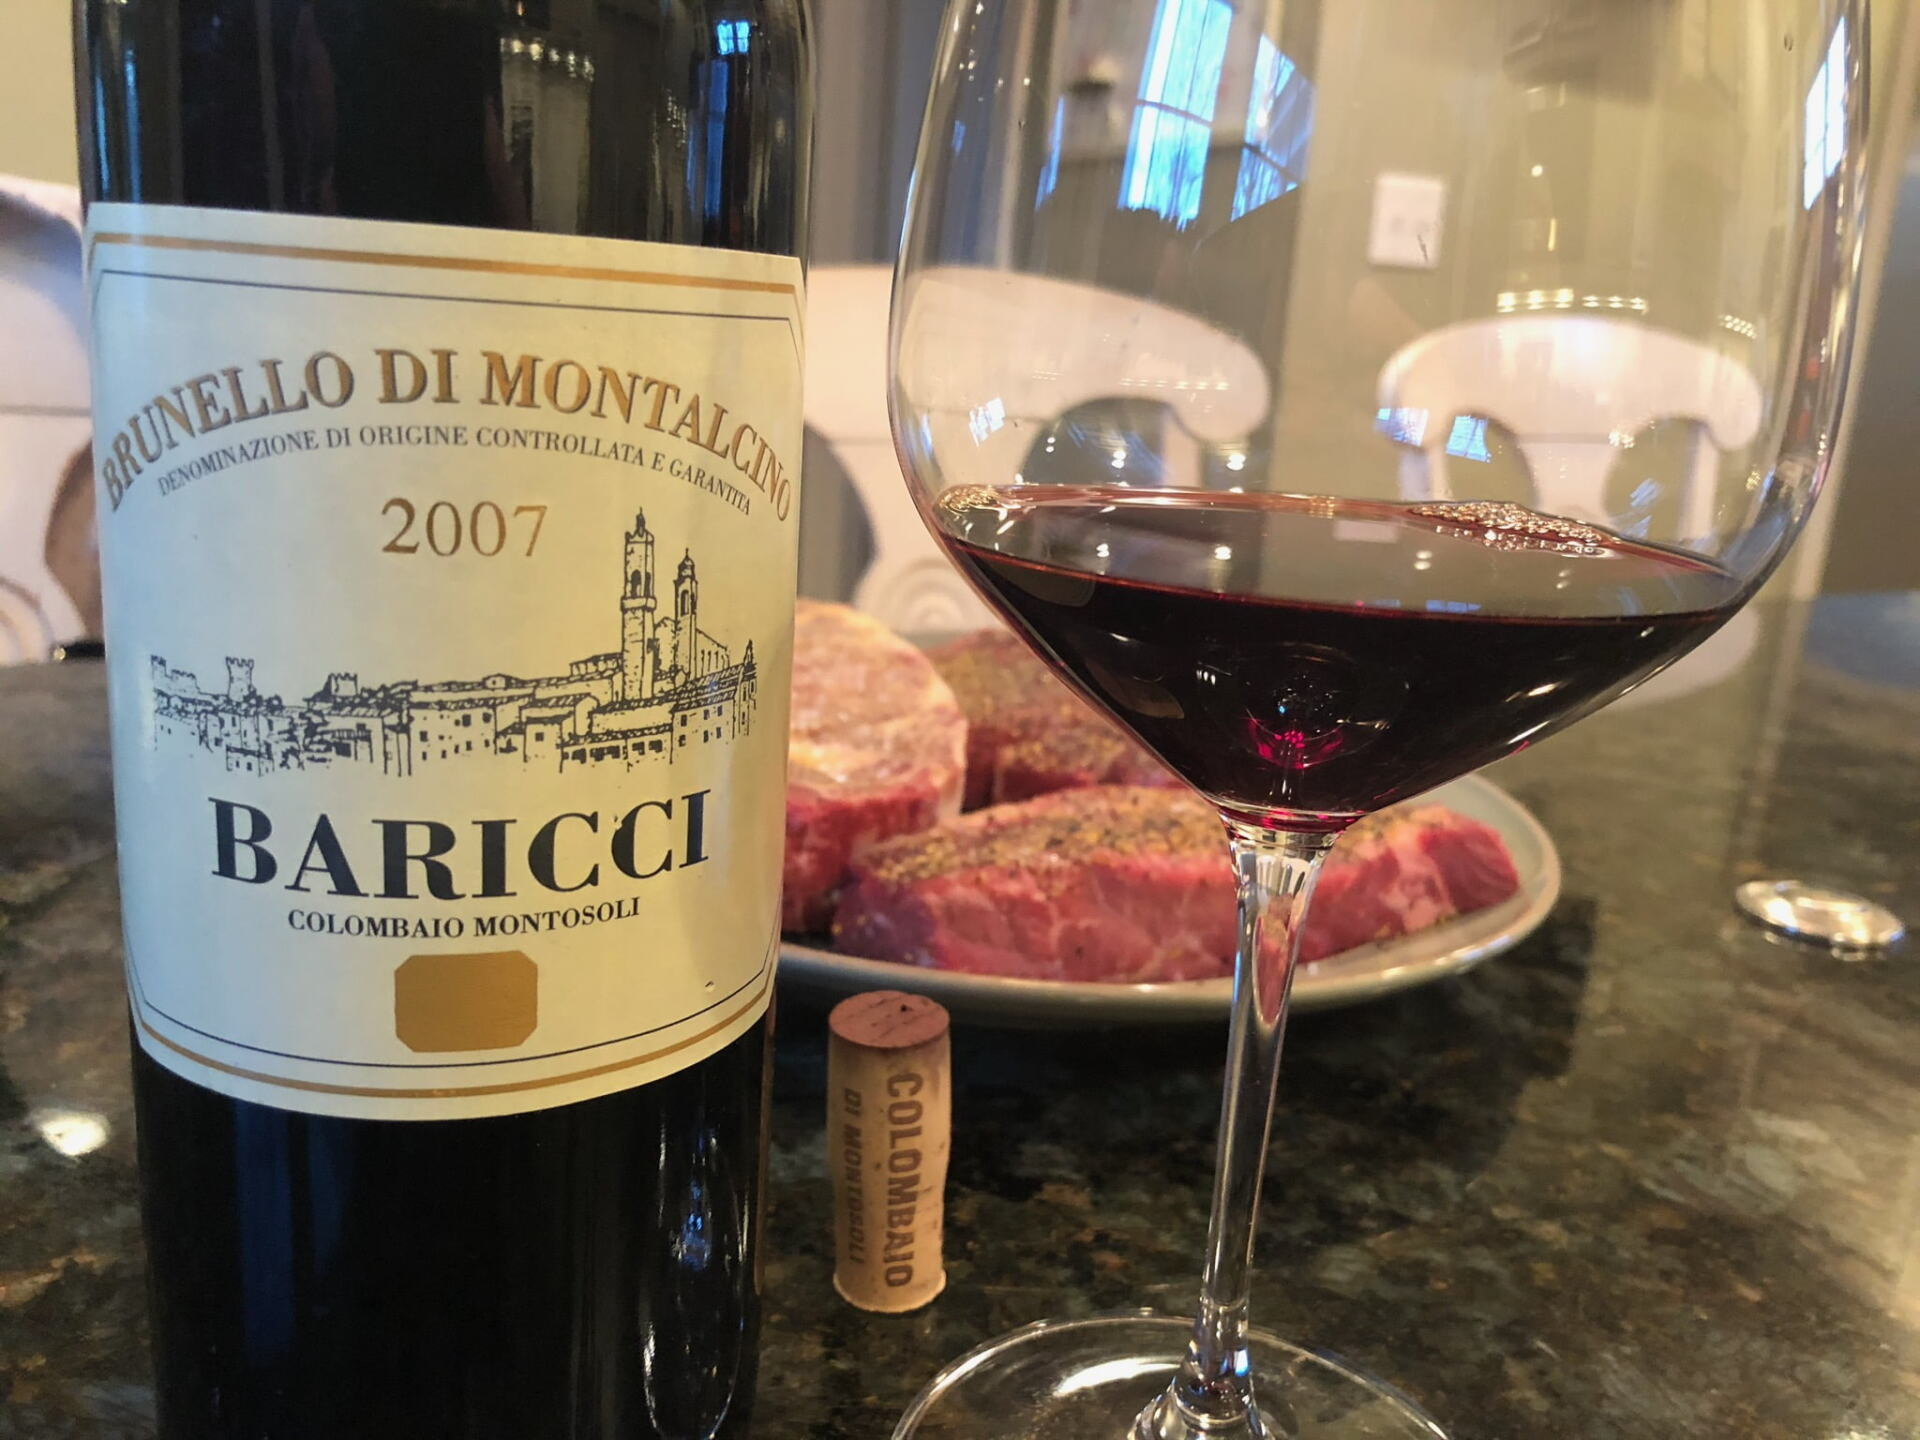 Baricci Brunello and steaks